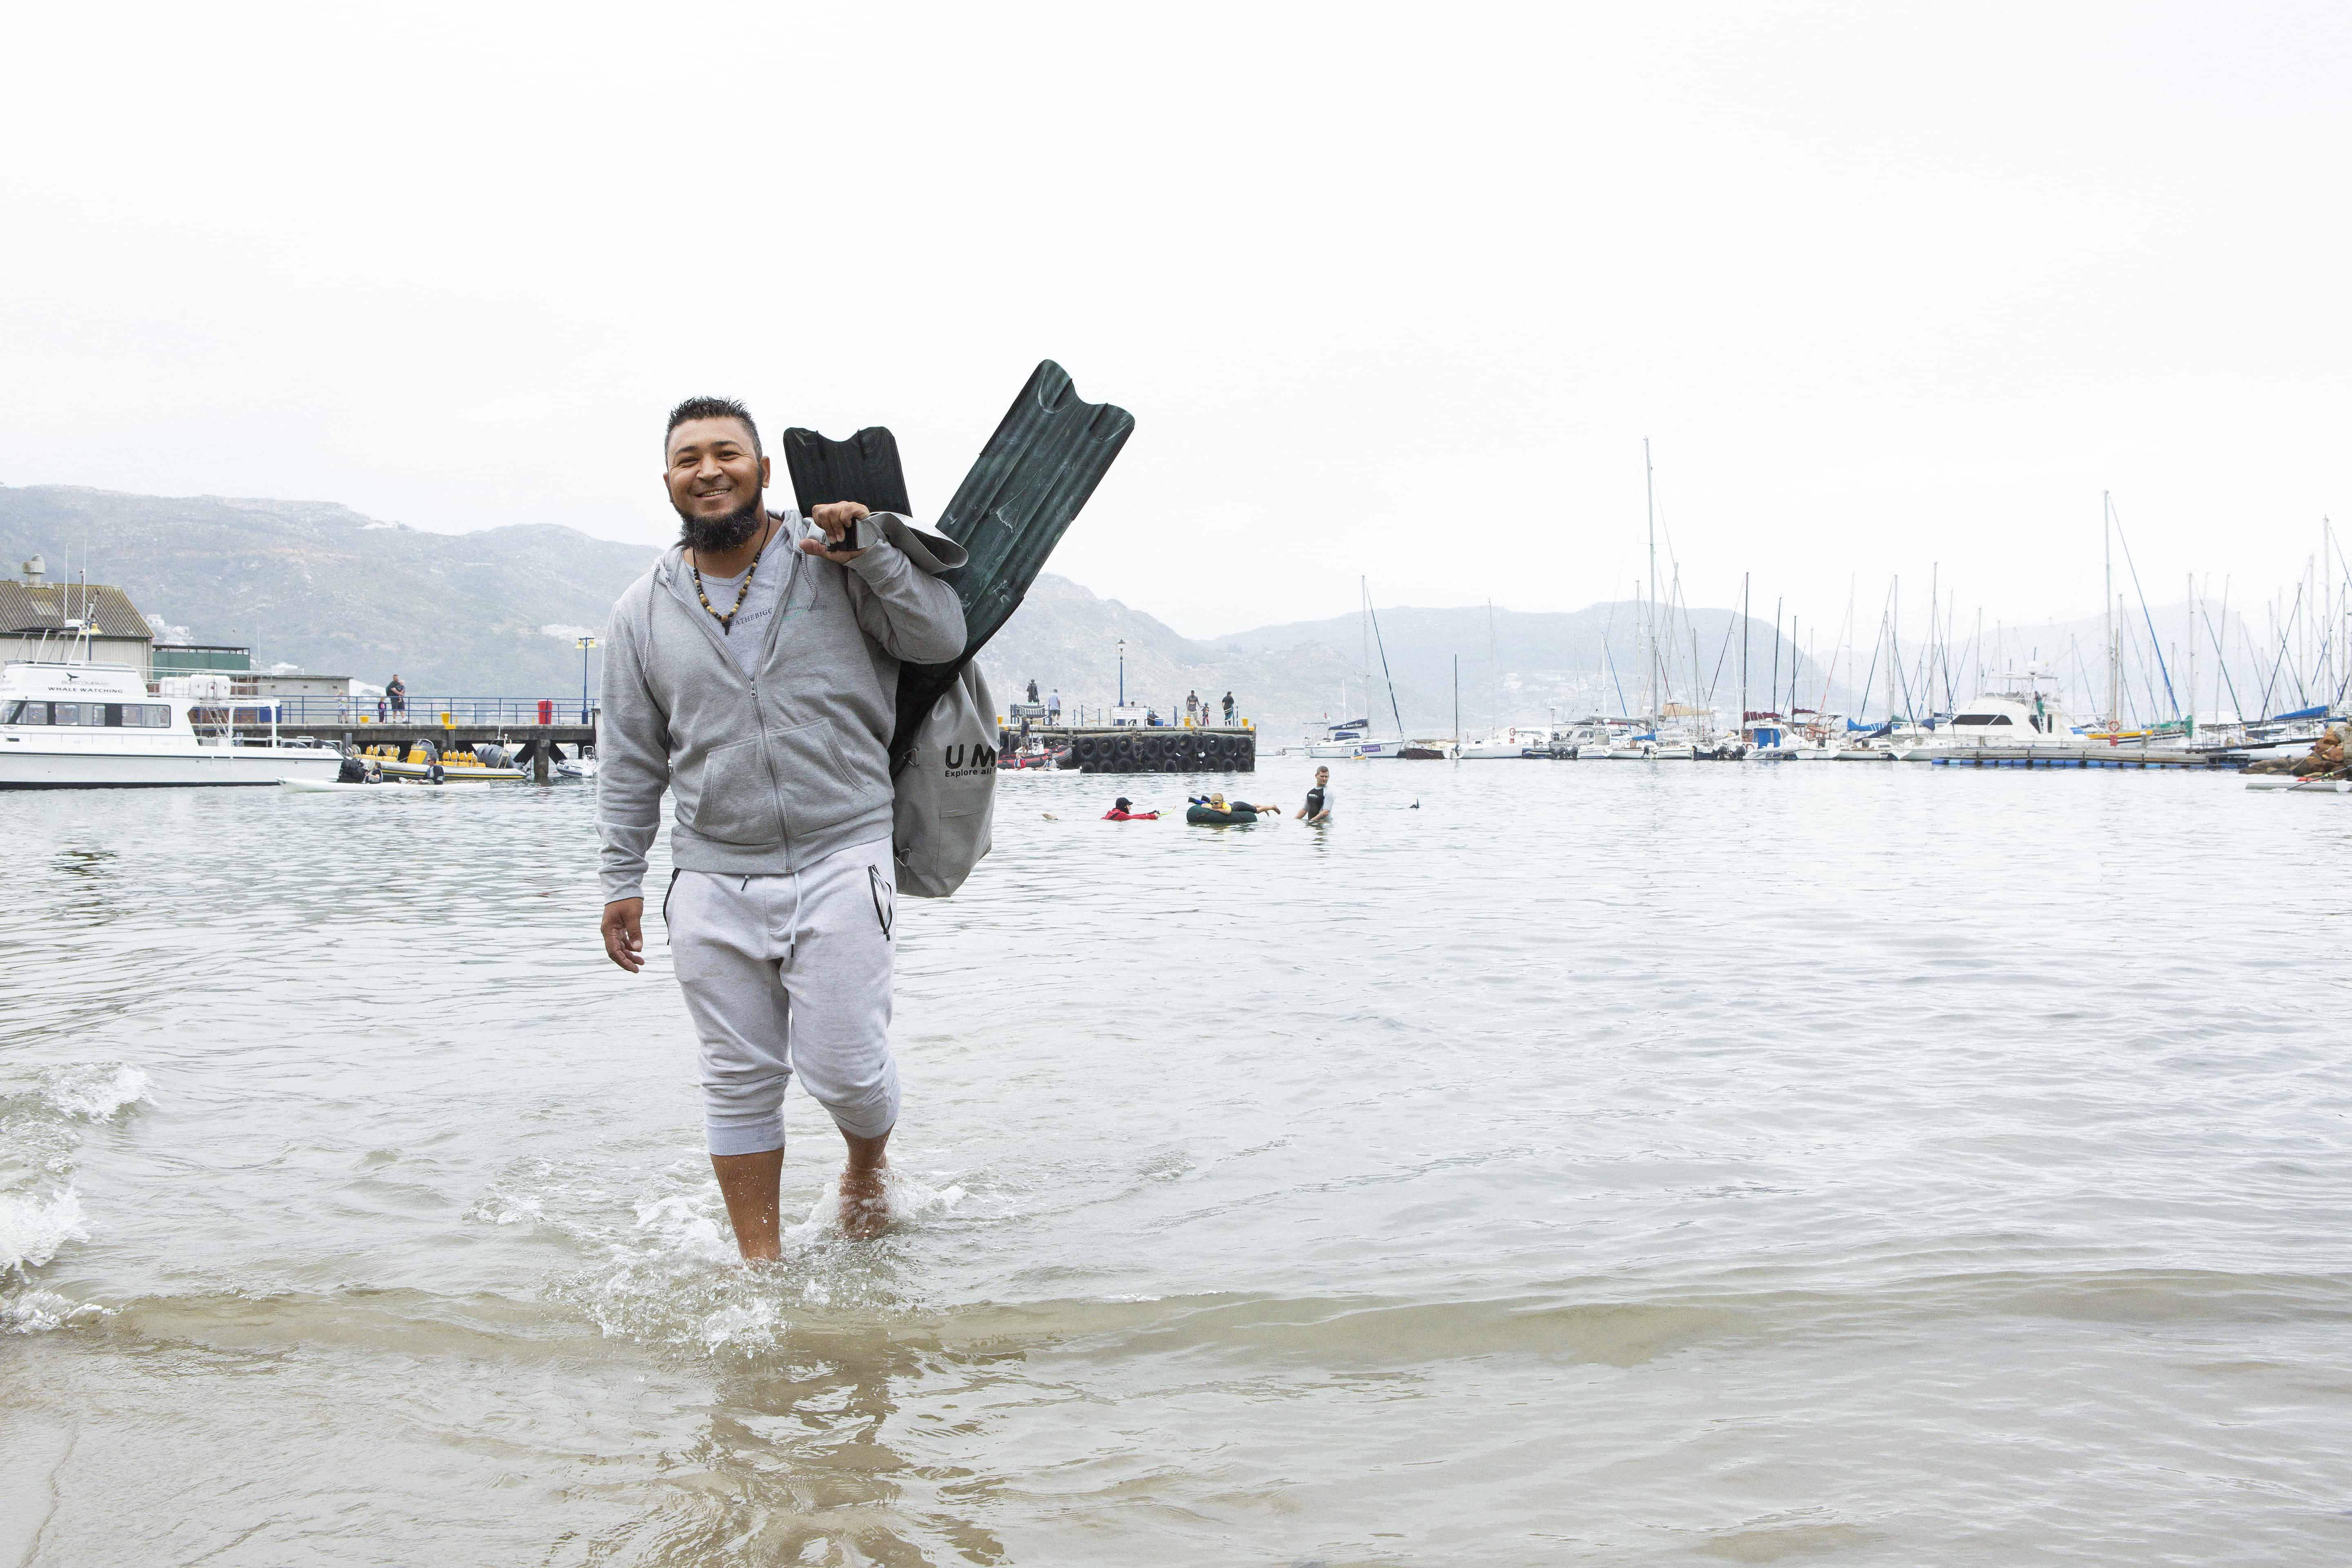 How This Guy Is Taking The Plunge To Save The Oceans